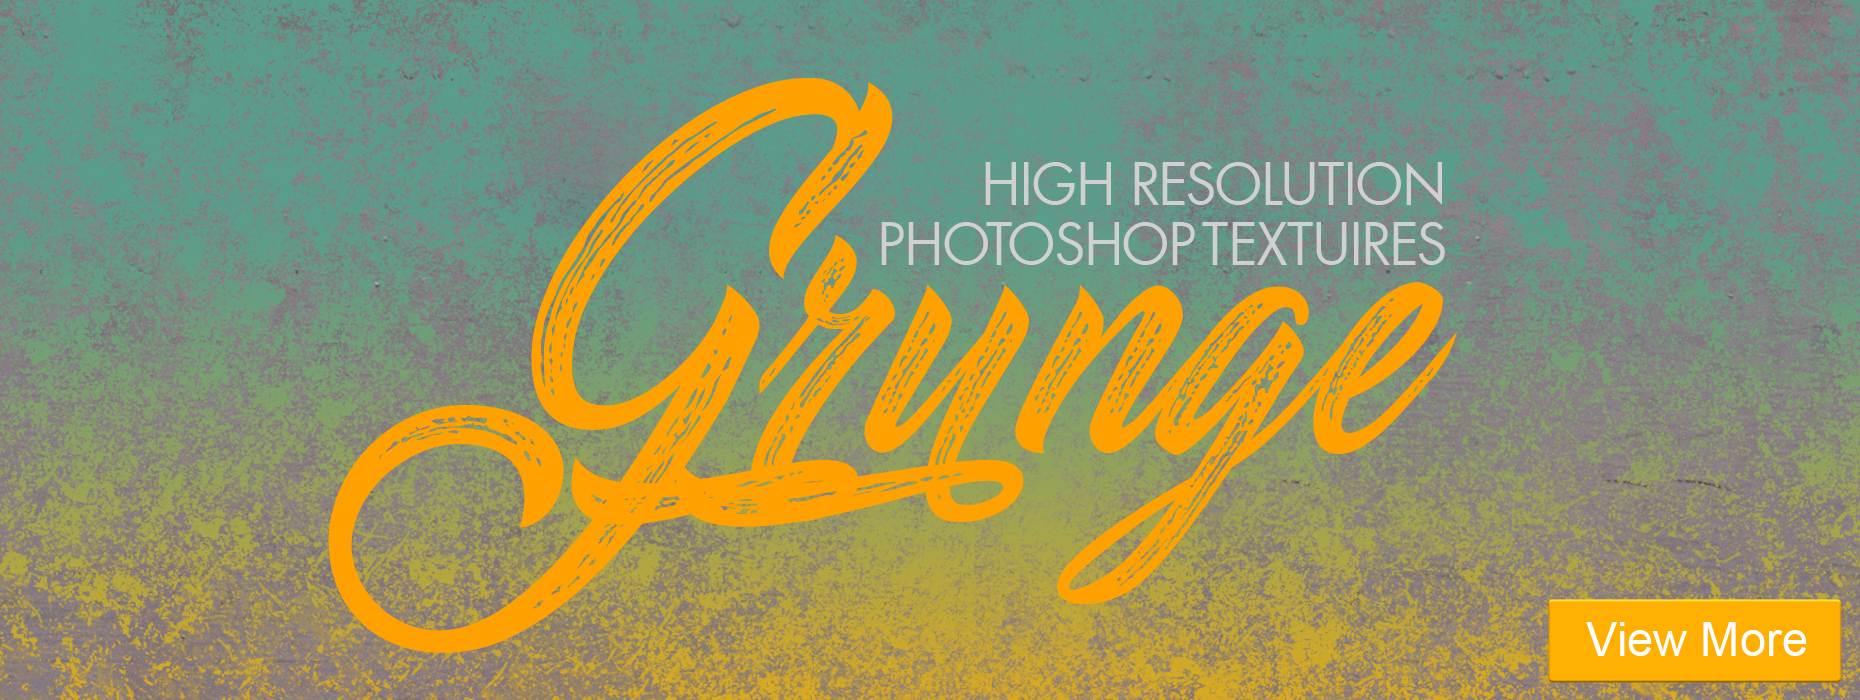 free grunge texture photoshop film look lightroom presets banner girl